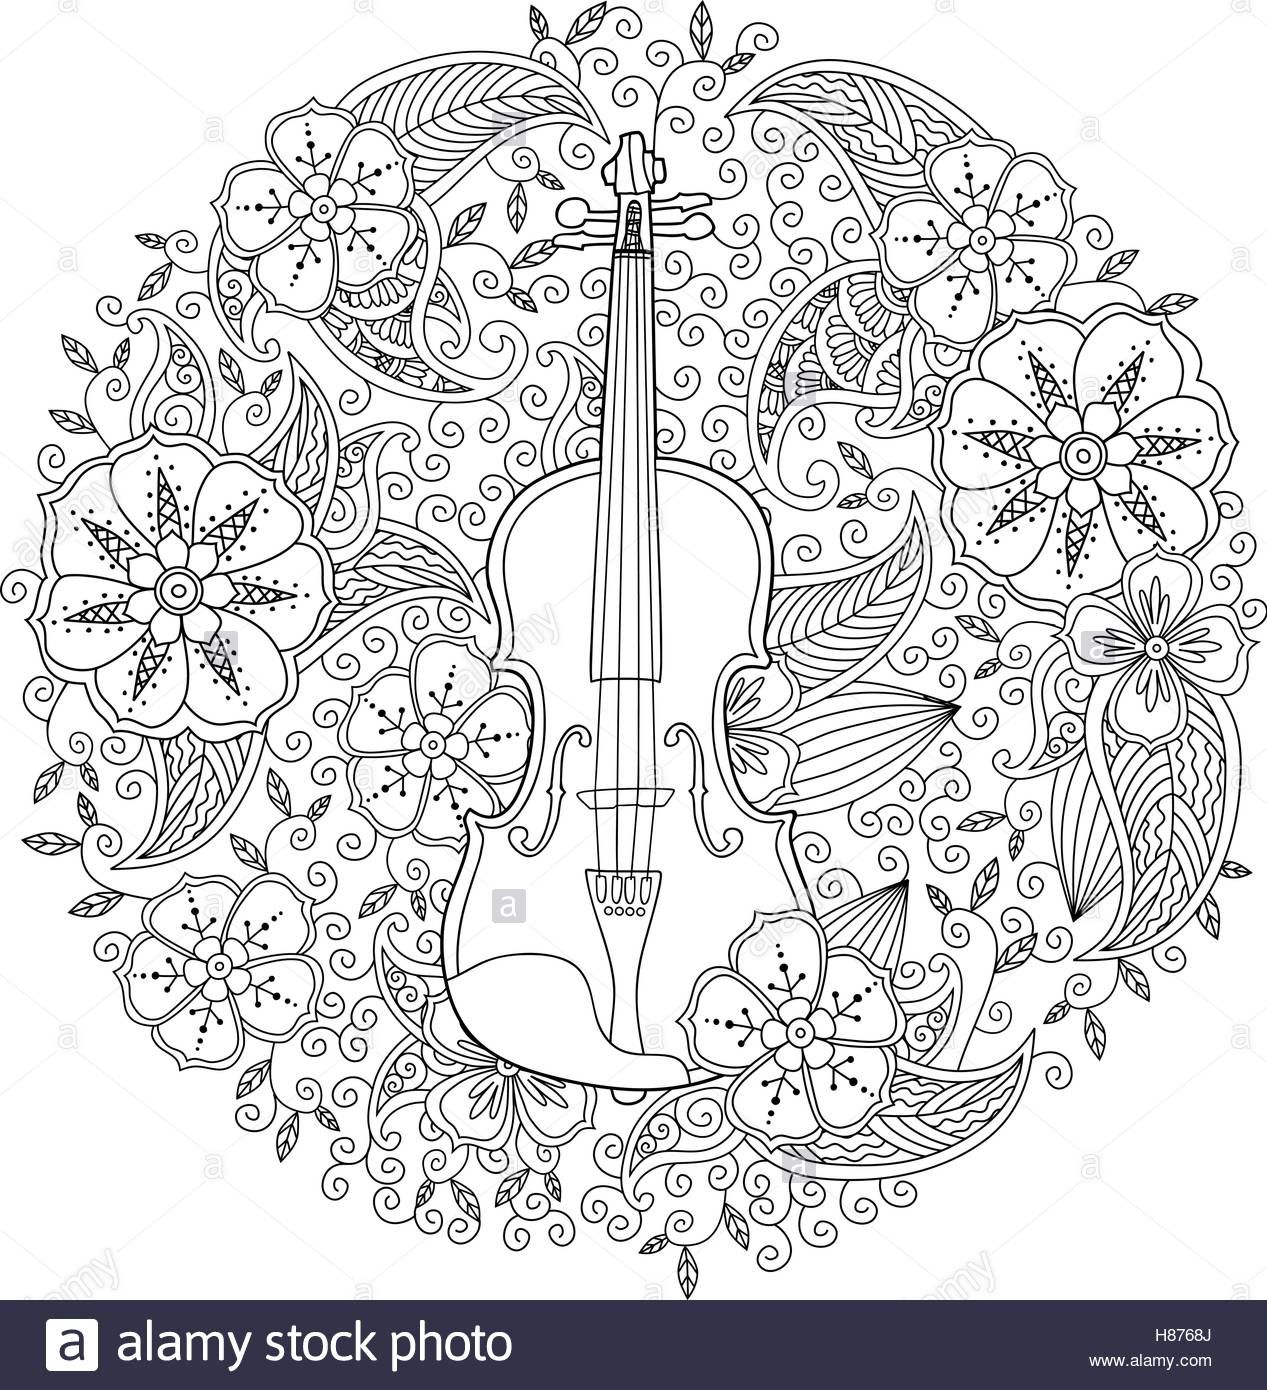 Download This Stock Vector Coloring Page With Ornamental Violin In Circle Shape On White Background H87 Music Coloring Sheets Music Coloring Coloring Books